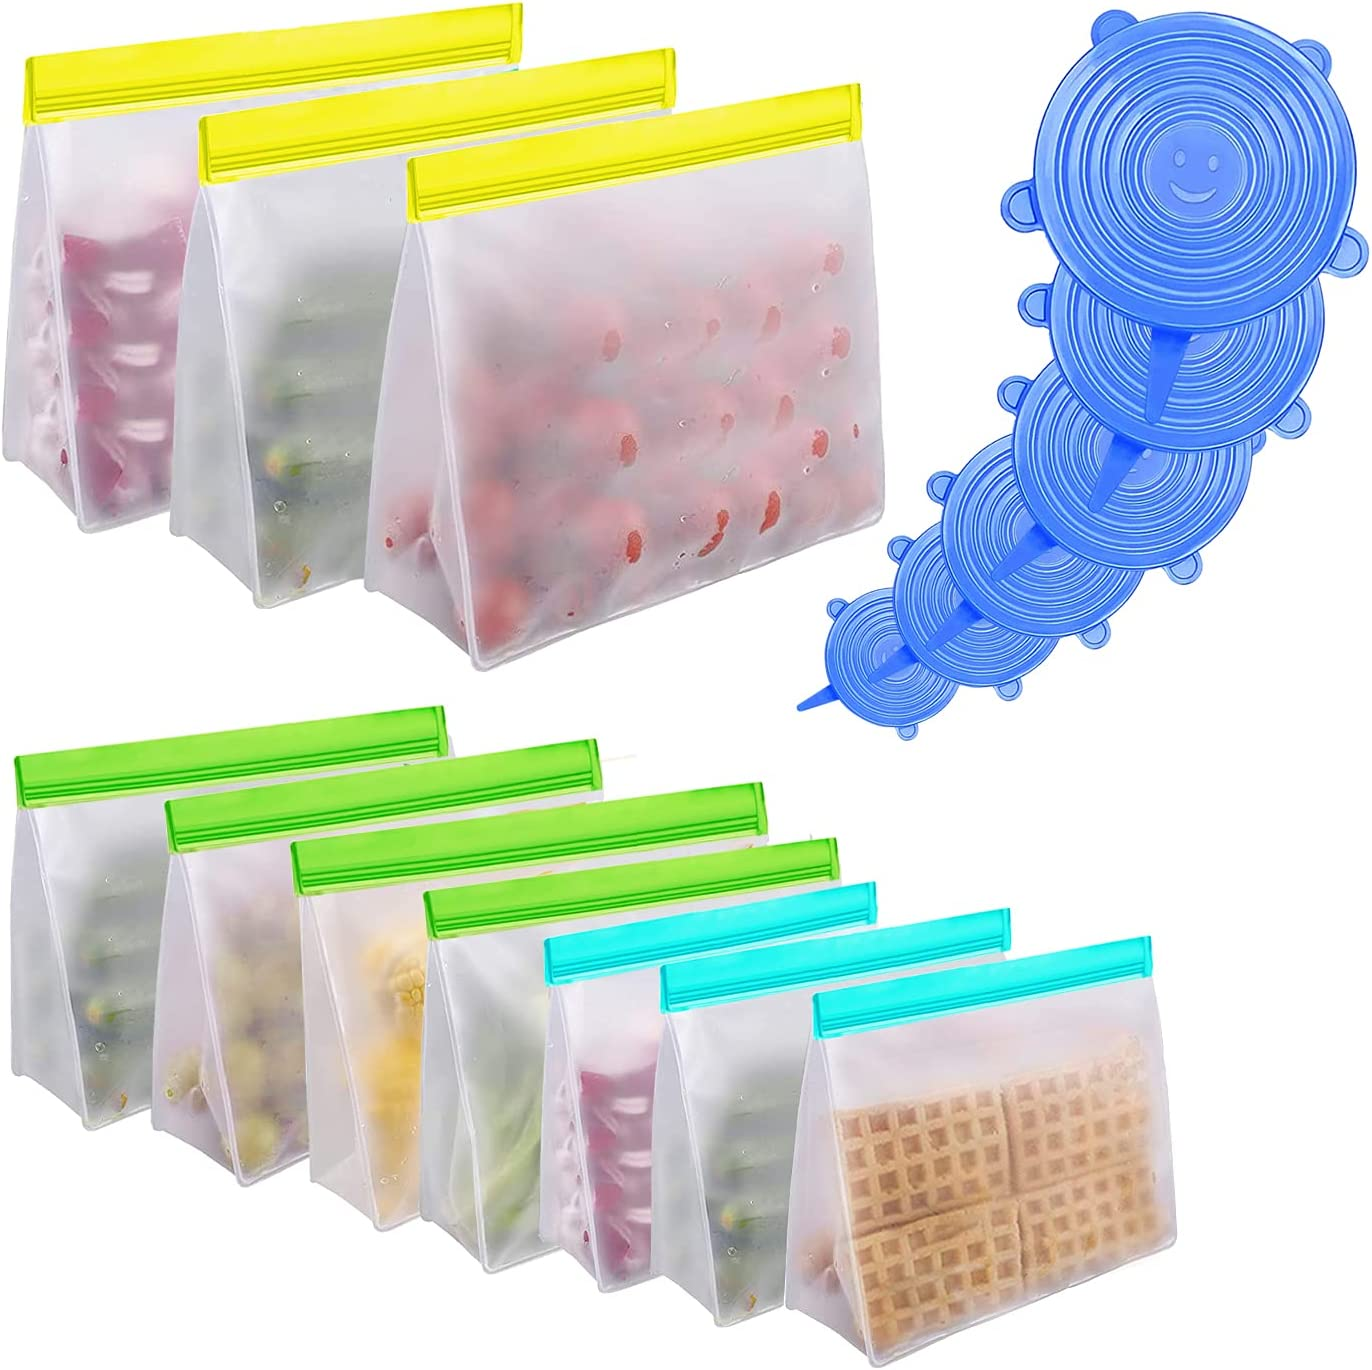 Reusable Food Storage Bags, 16 Pack Stand Up Extra Thick Food Grade PEVA Freezer Bags - Leakproof Seal Reusable Lunch Bag for Meat Fruit Veggies, BPA Free, Freezer Safe(3 Extra Large,4 Large,3 Medium)